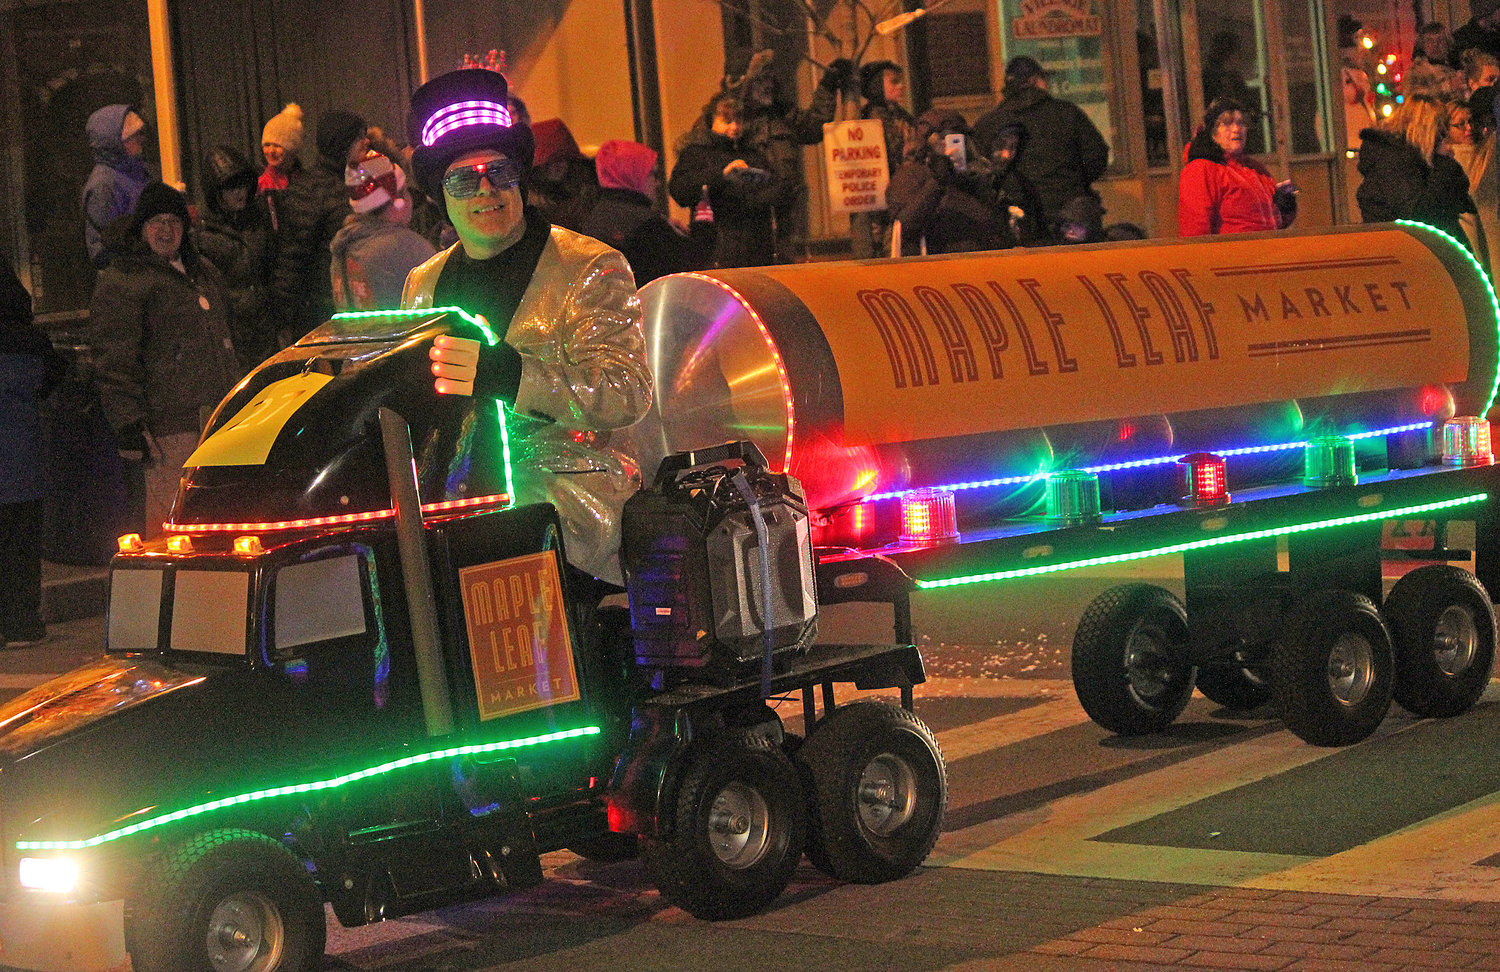 FESTIVE TRUCK — Towns, villages and organizations from all over join in to welcome the season of giving for the second annual Canastota Parade of Lights on Saturday, Nov. 30.